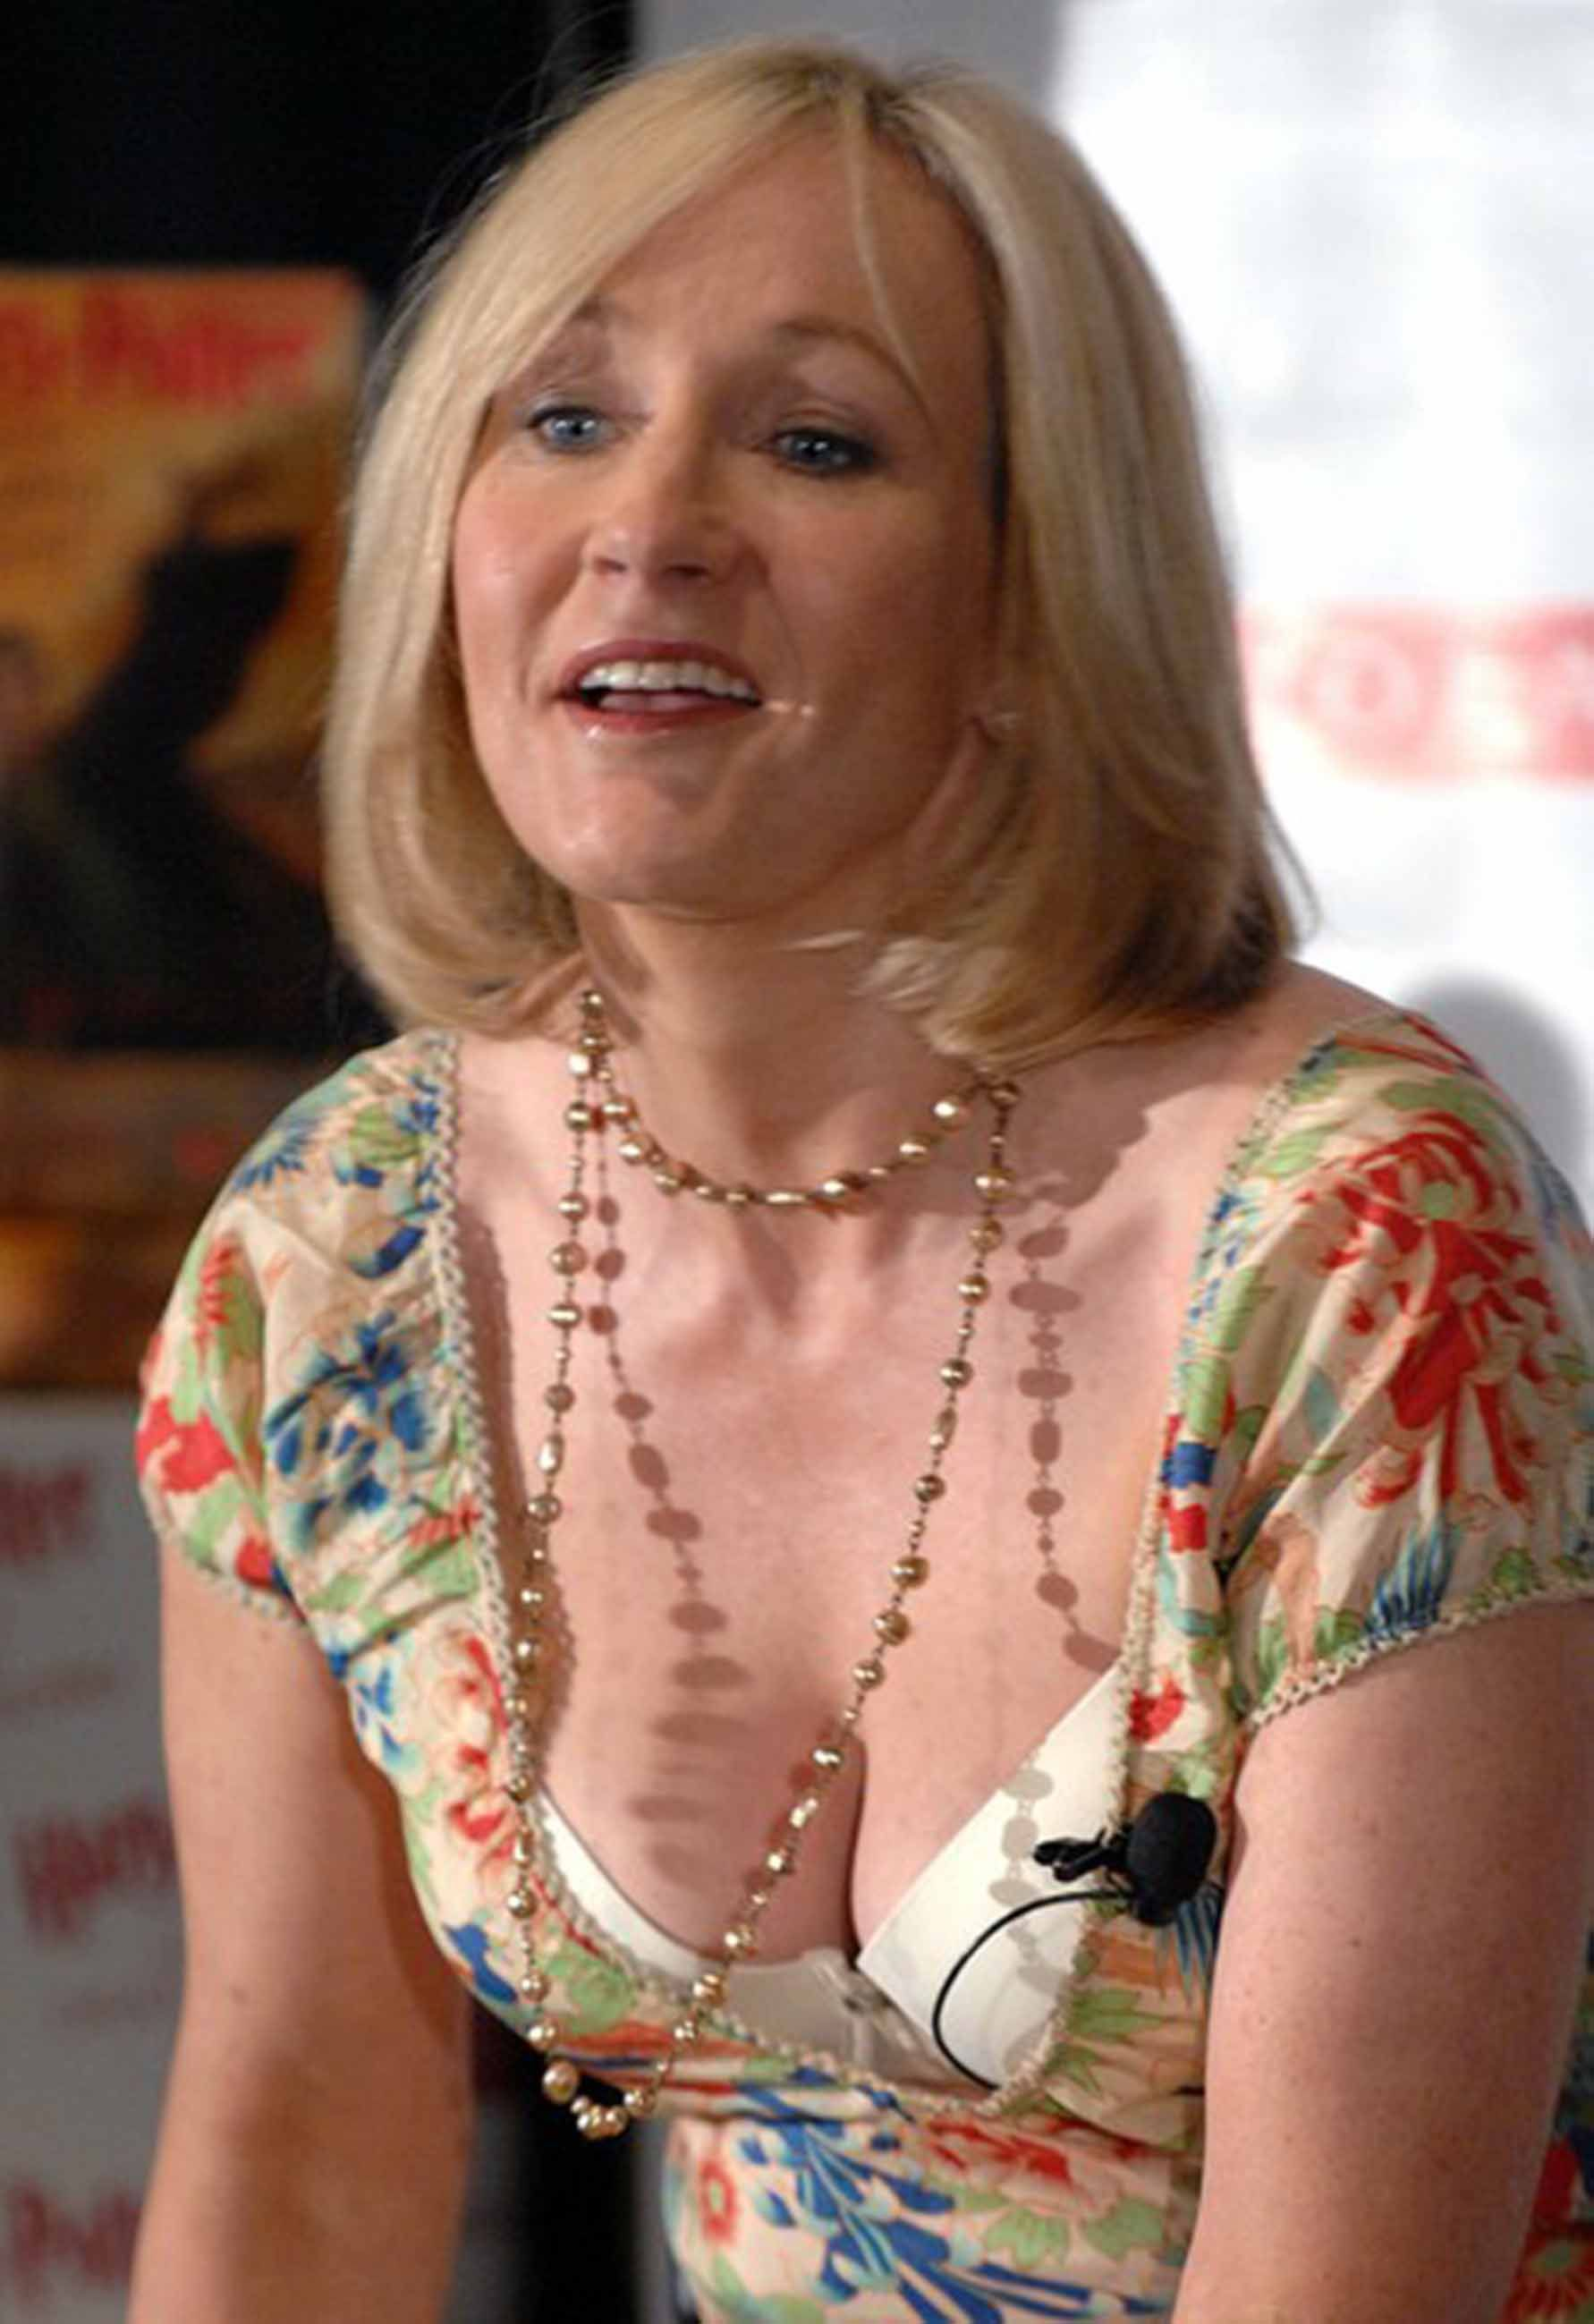 j k rowling and her troublesome bra gorgeous older women oh j k rowling and her troublesome bra